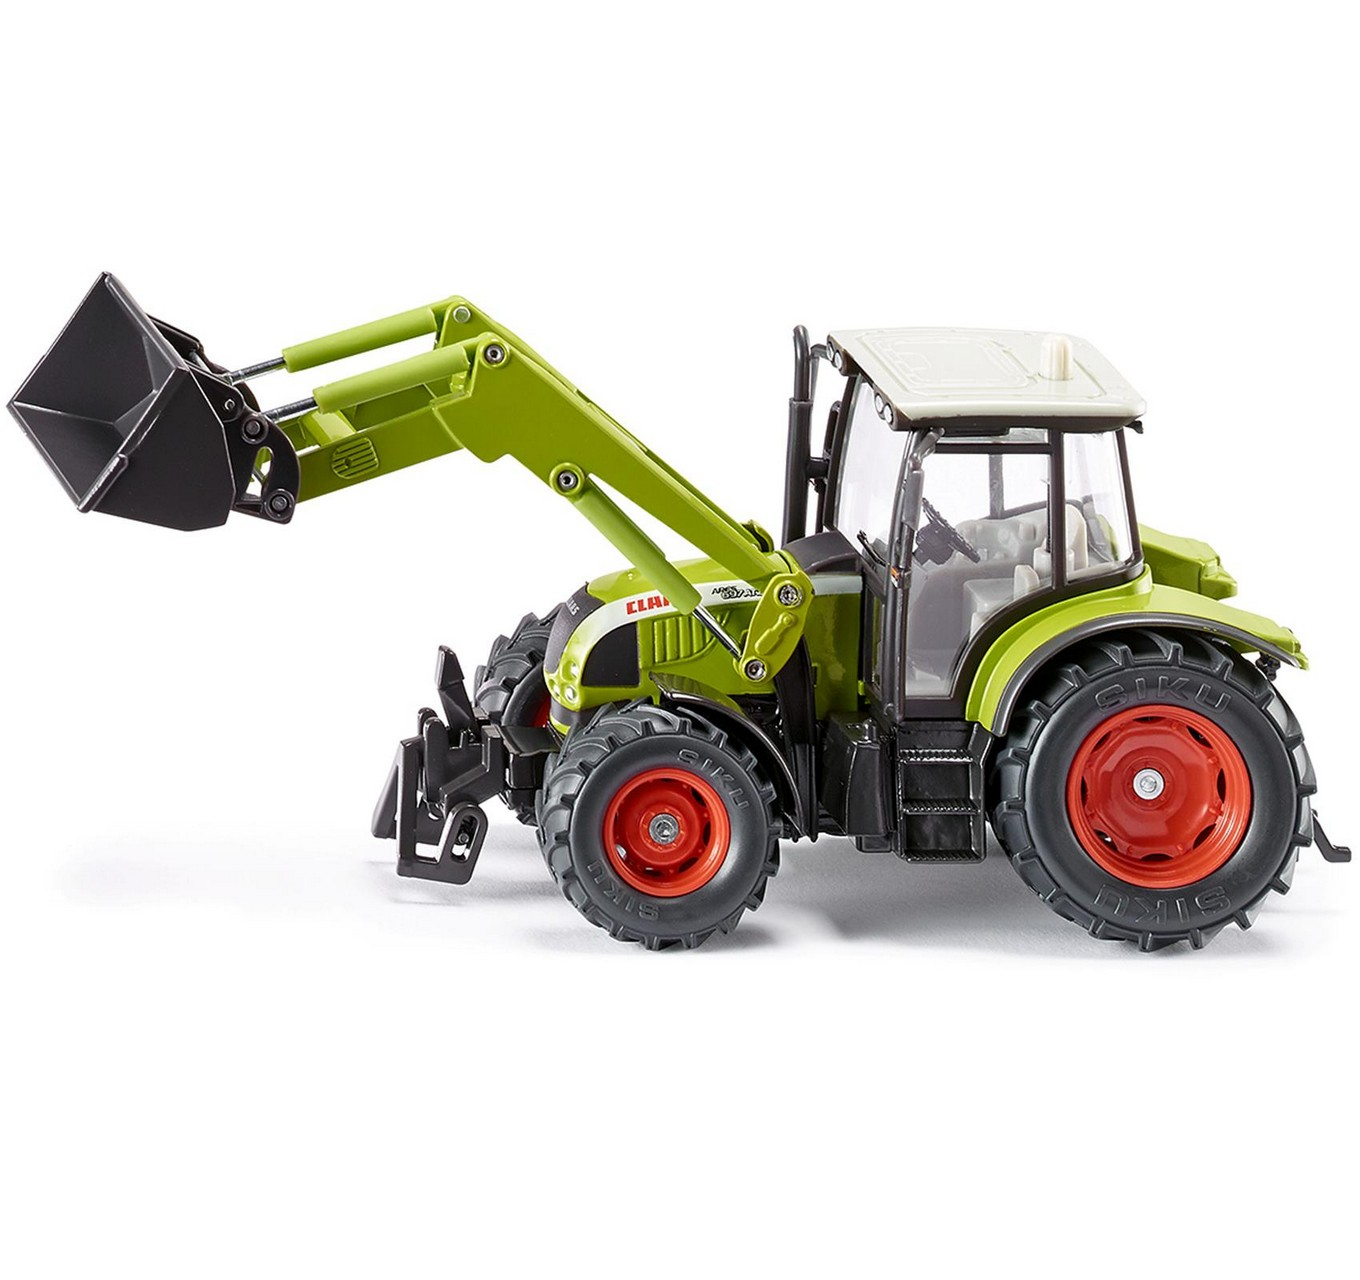 Claas Ares with Loader